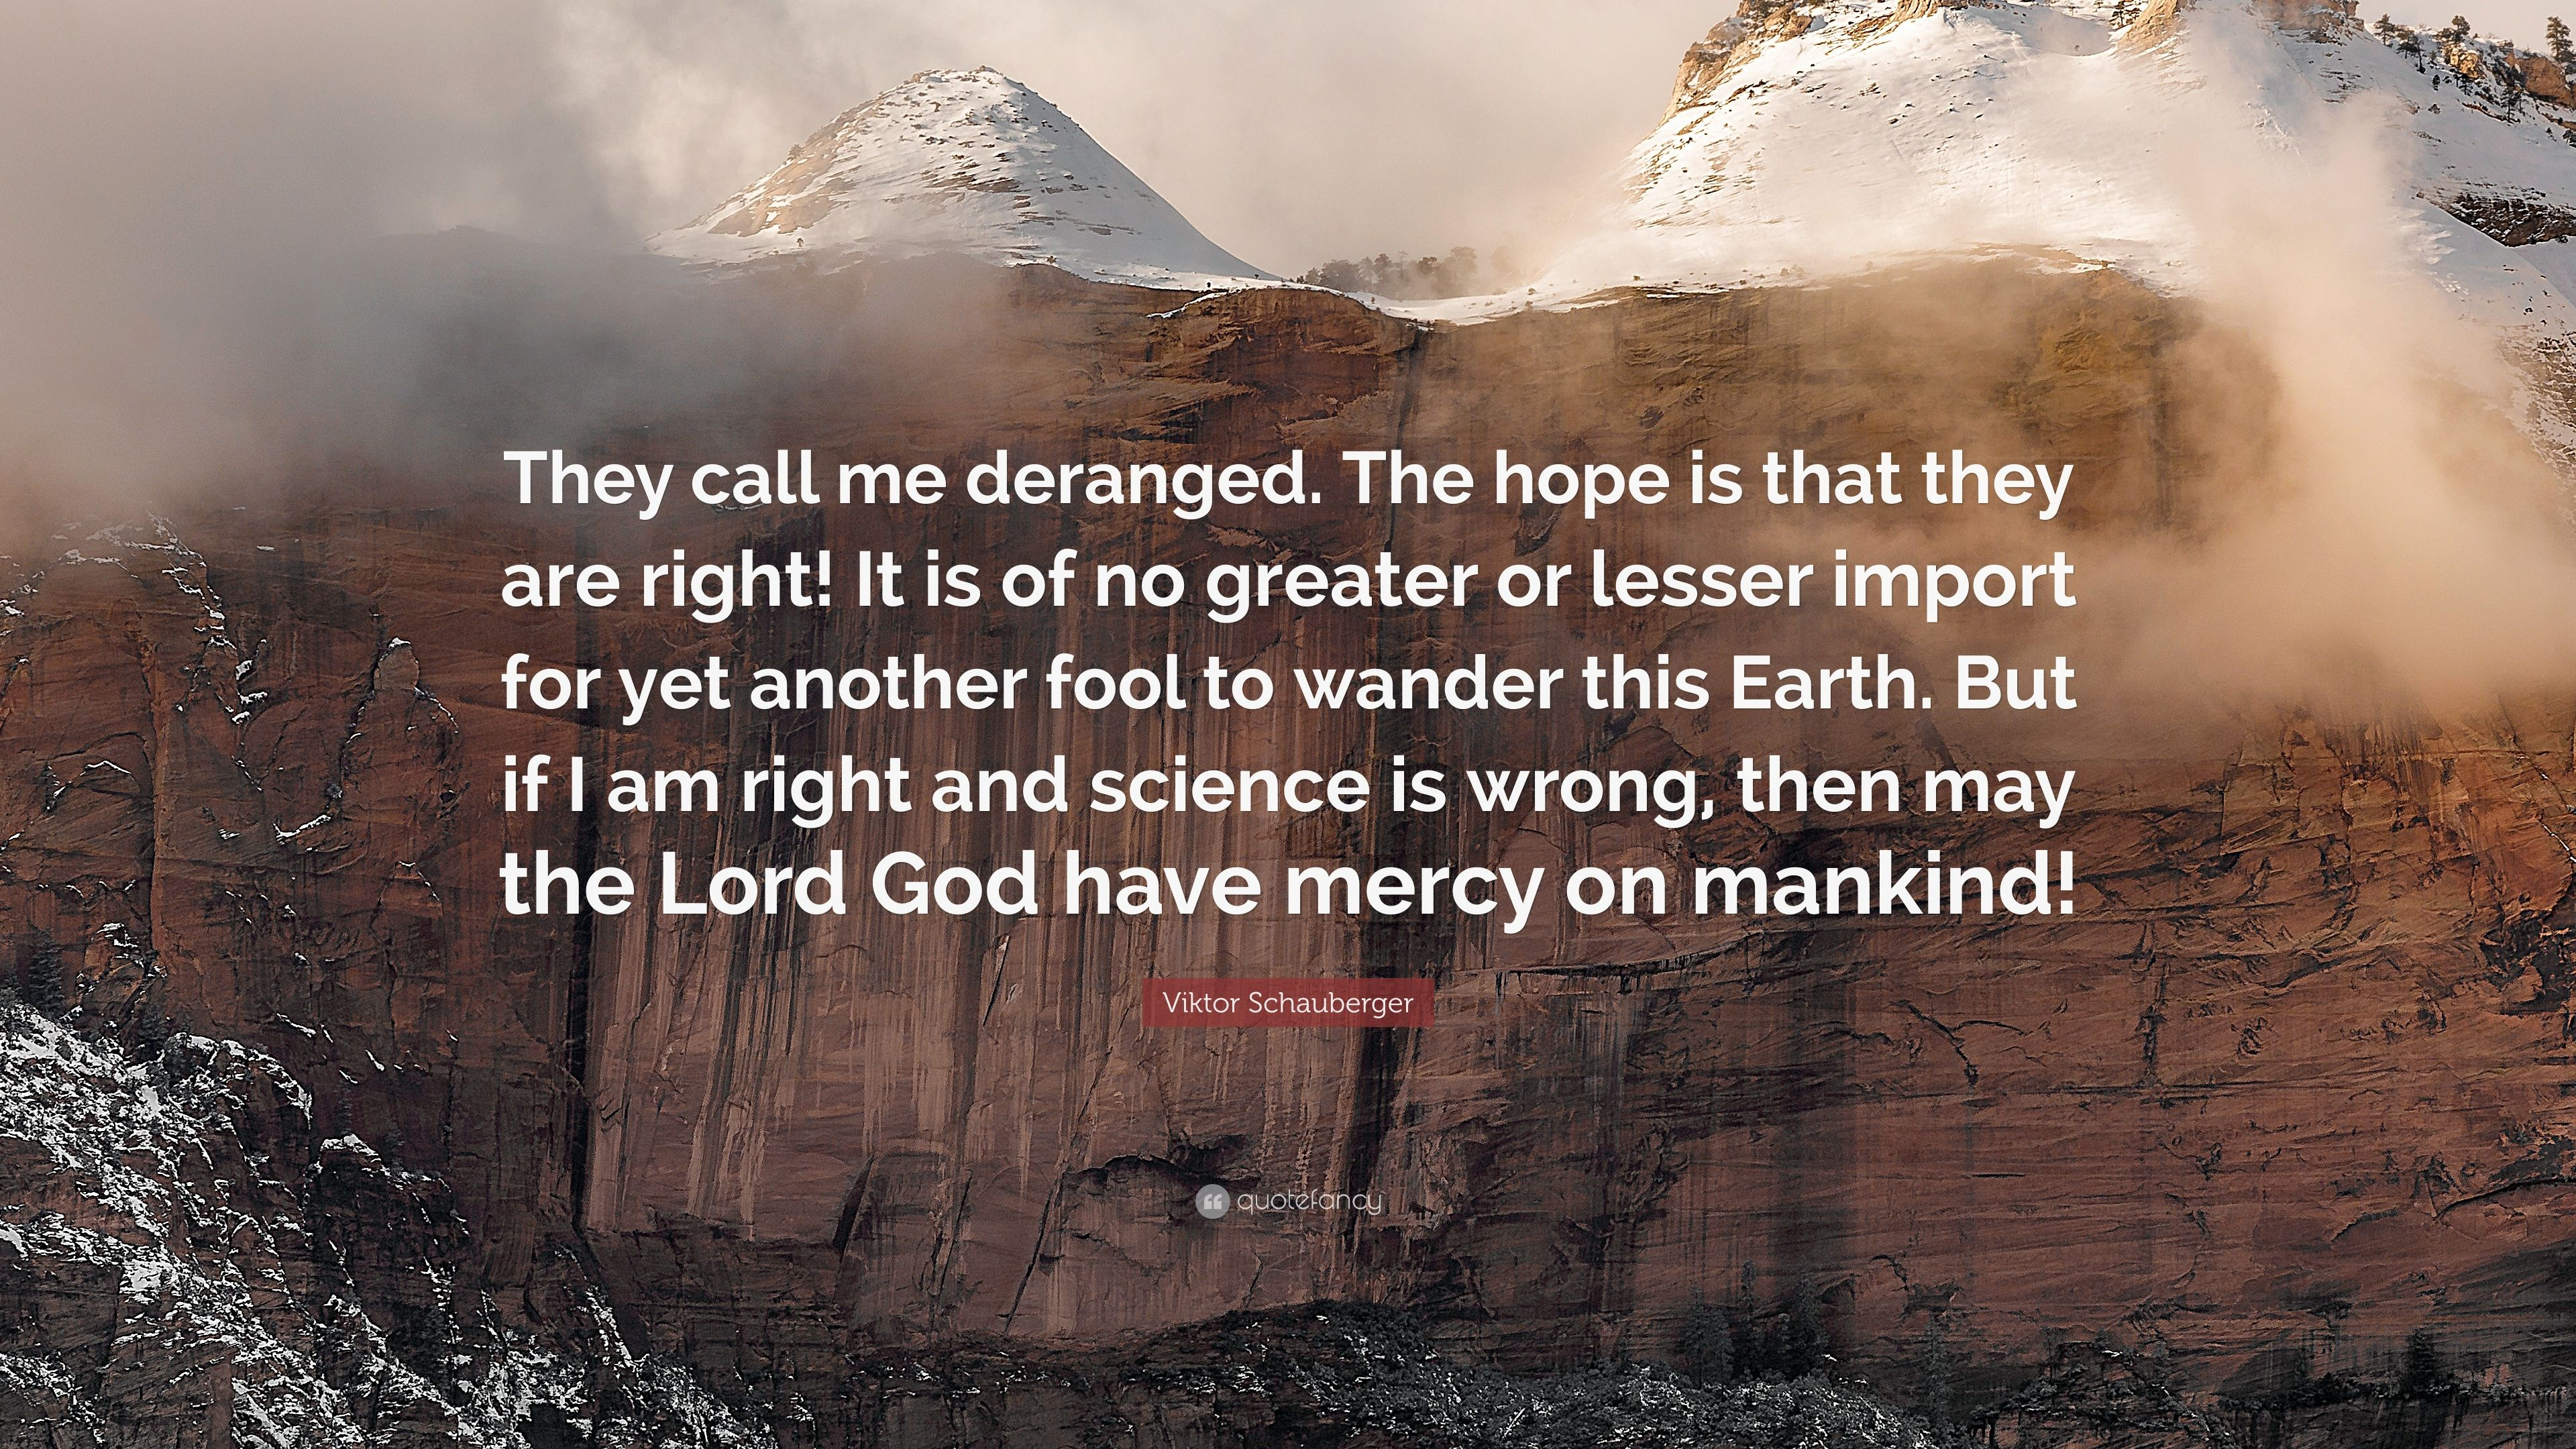 """Viktor Schauberger Quote: """"They call me deranged. The hope is that they are  right! It is of no greater or lesser import for yet another fool to wan..."""""""